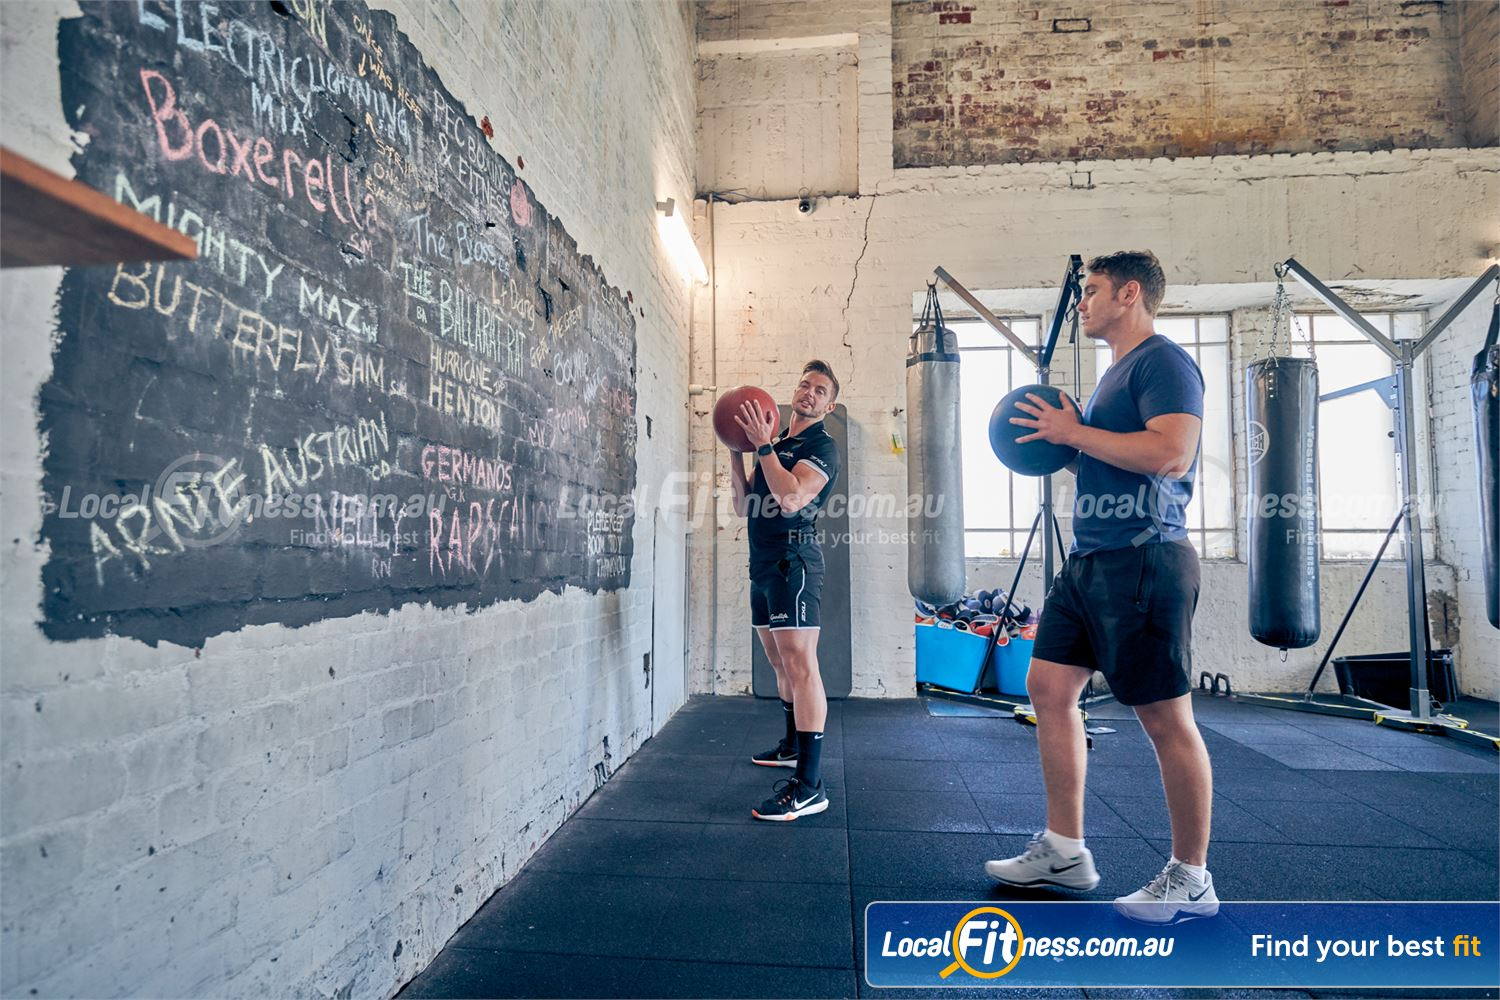 Goodlife Health Clubs Near St Kilda Join our exciting range of Prahran boxing classes.